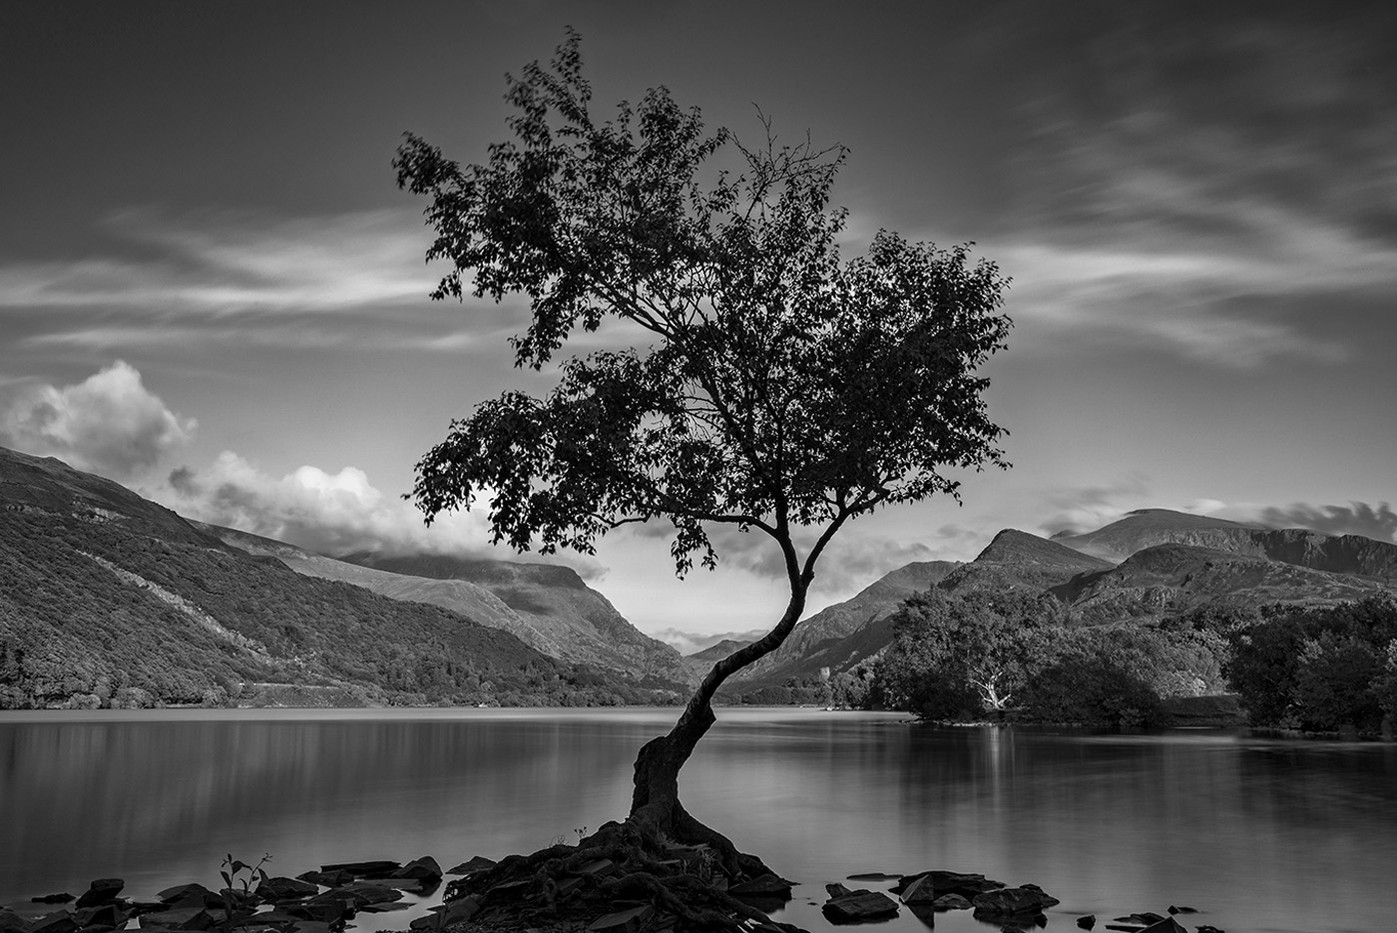 18 LONE TREE by Ann Paine